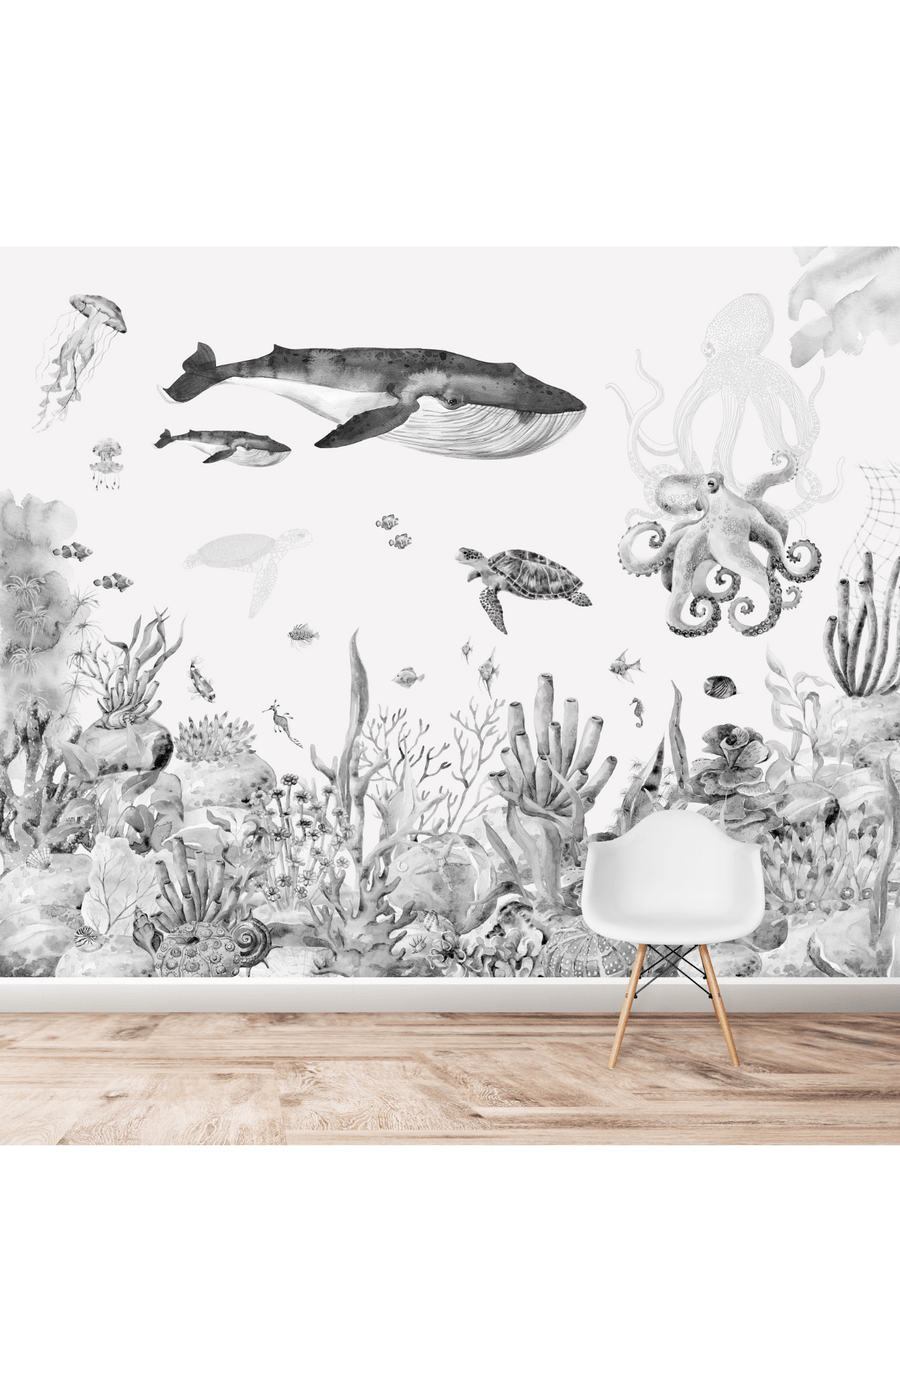 Munks + Me Under The Sea Watercolour Wallpaper Mural - Greys